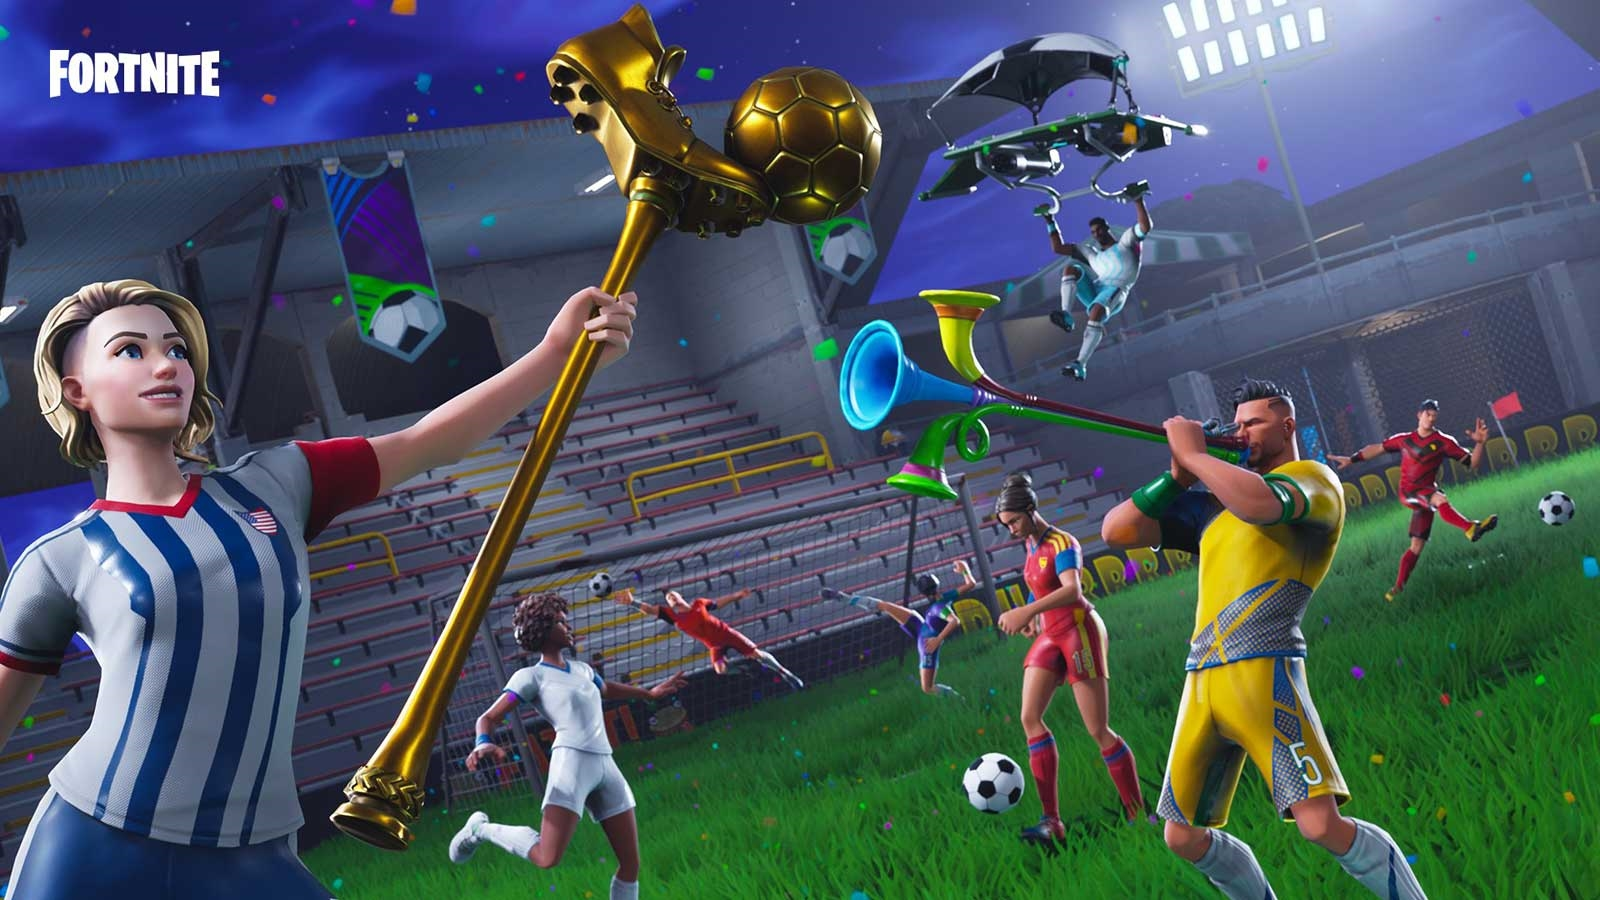 'Fortnite' marks World Cup with stadium and goal scoring challenges | DeviceDaily.com